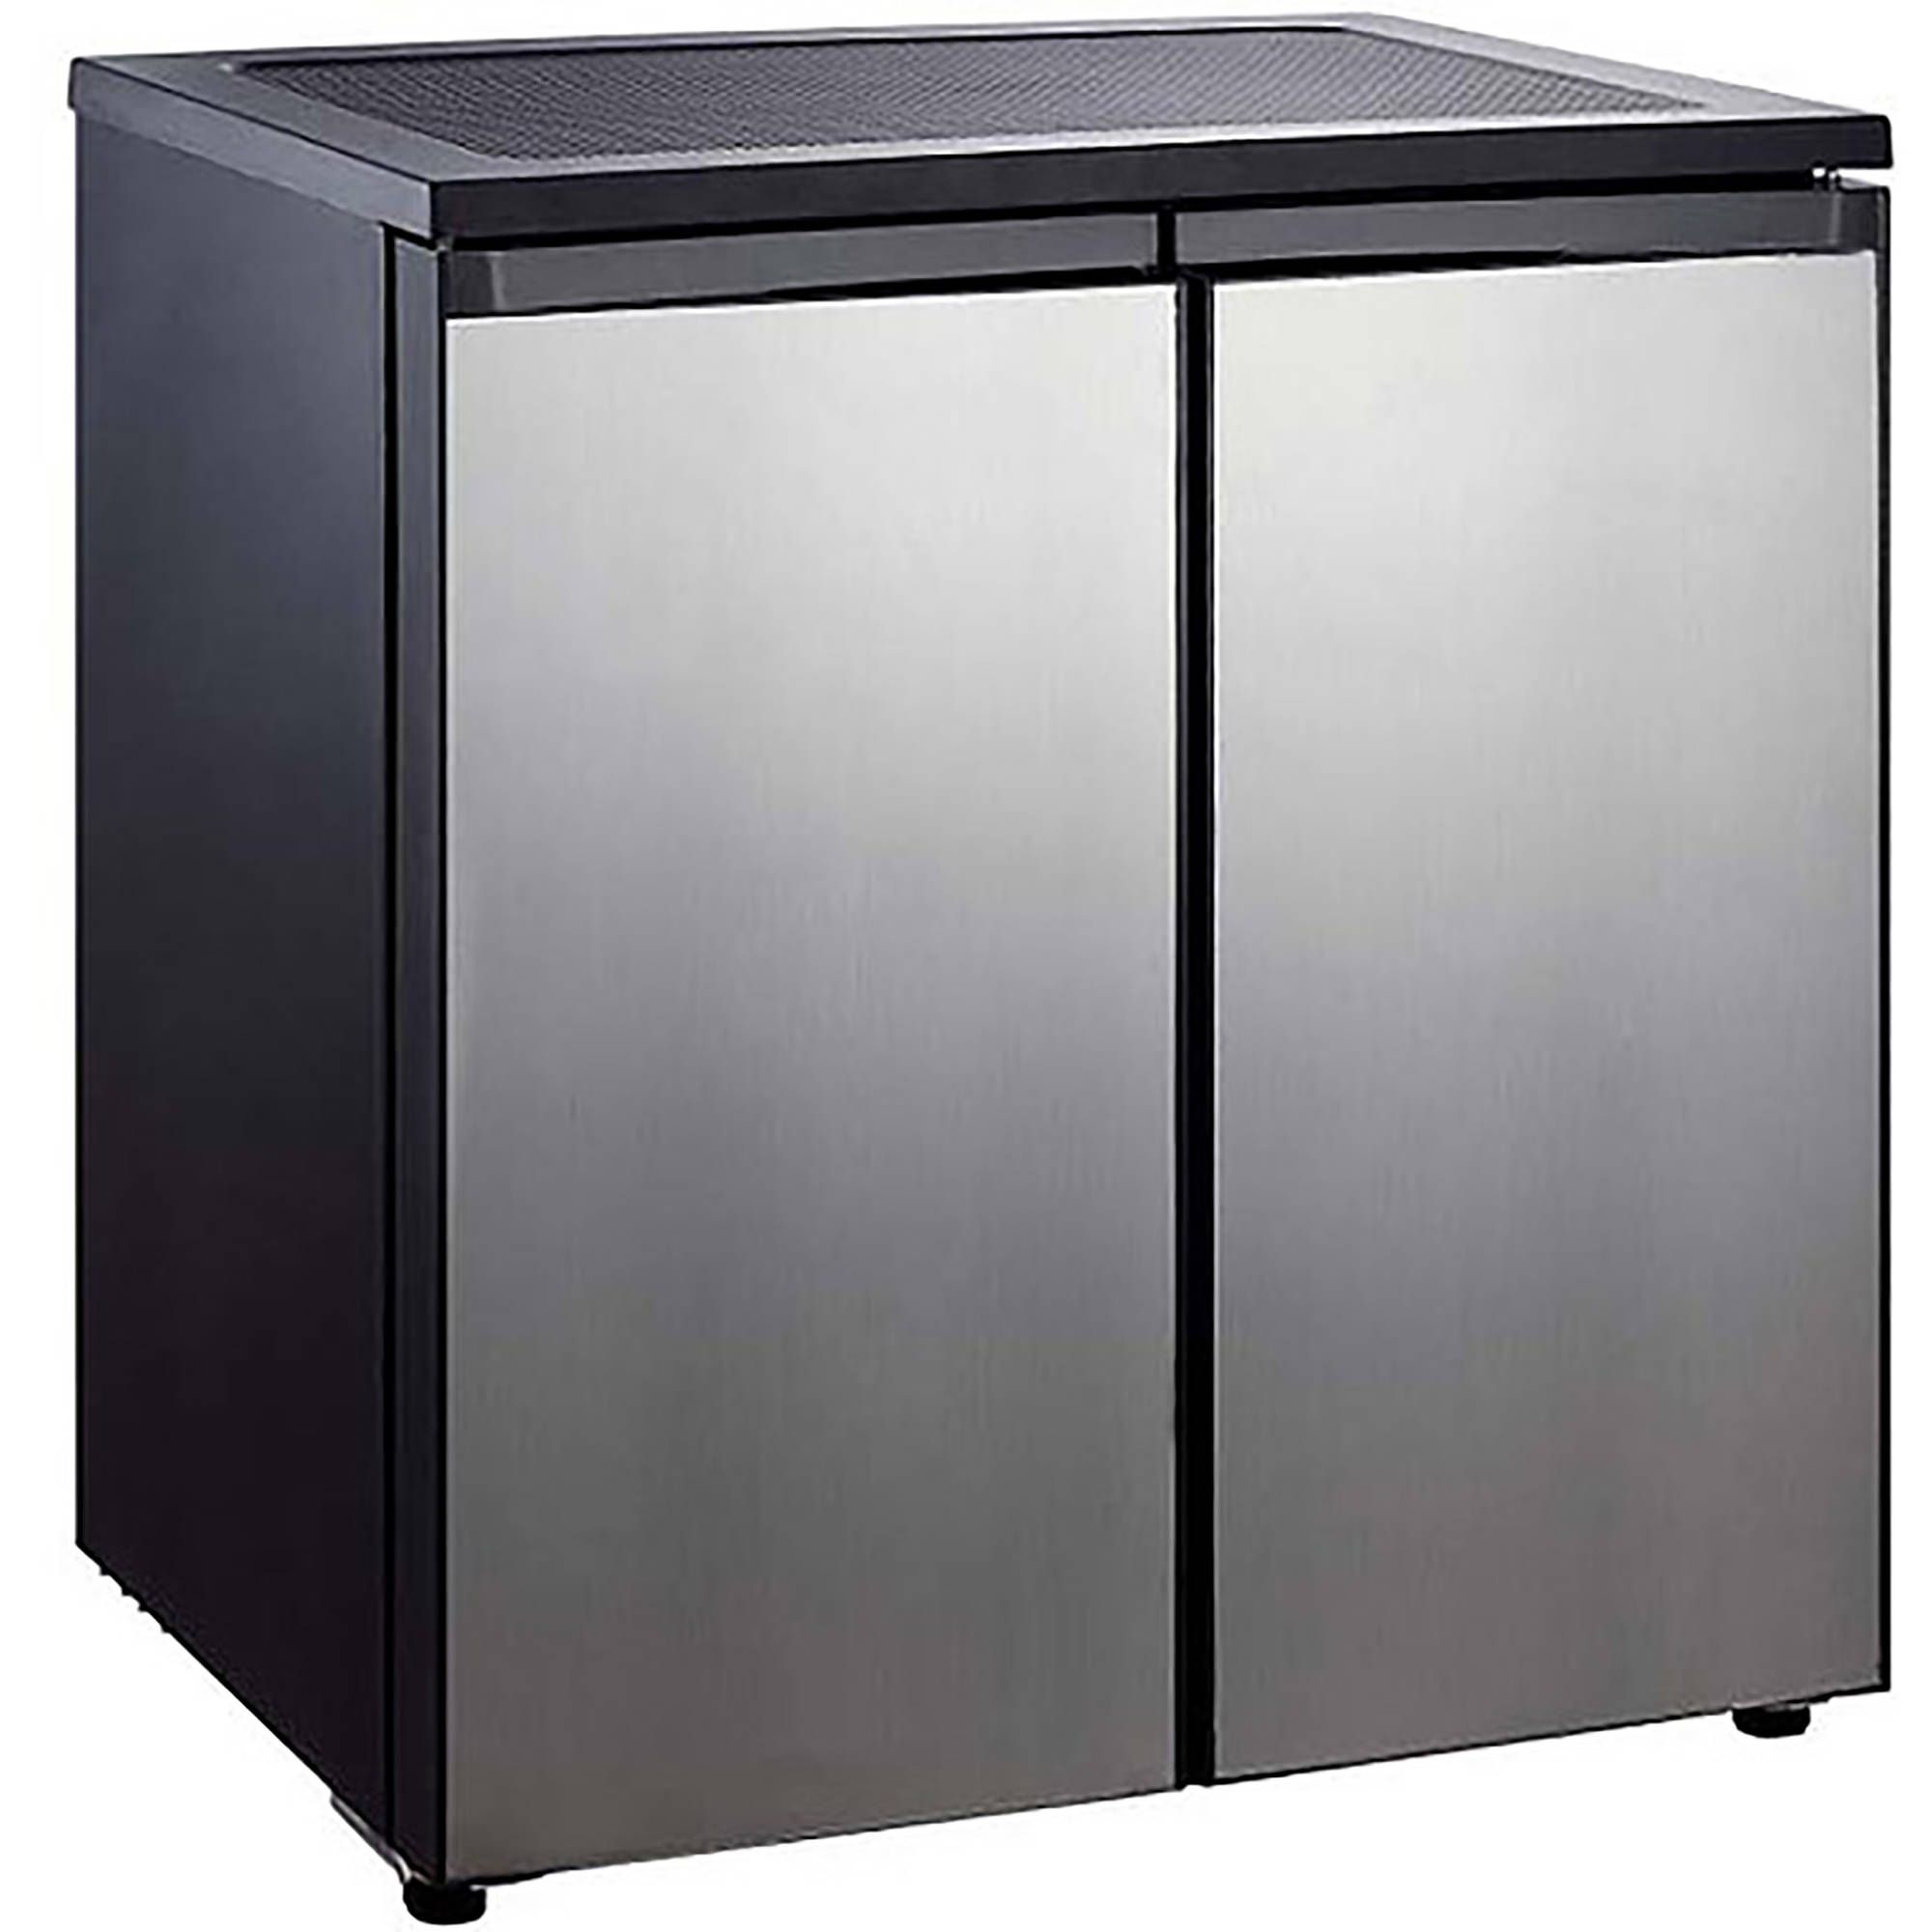 Igloo 5 5 Cu Ft Side By Side 2 Door Refrigerator Freezer